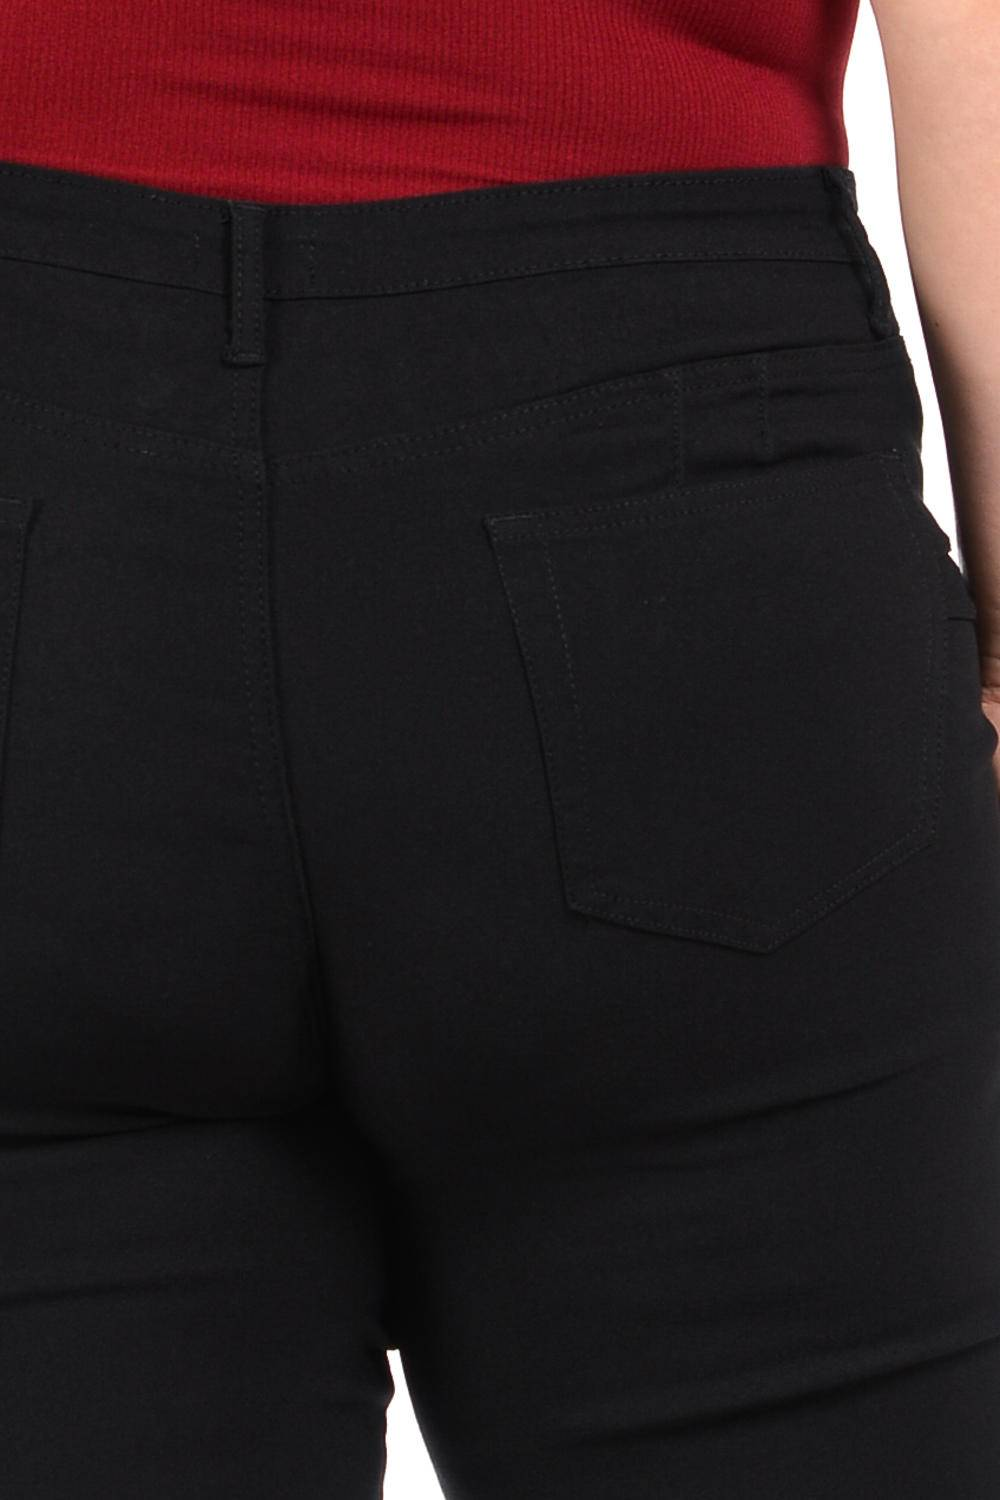 926 Missy Size High Waist Push Up Jeans